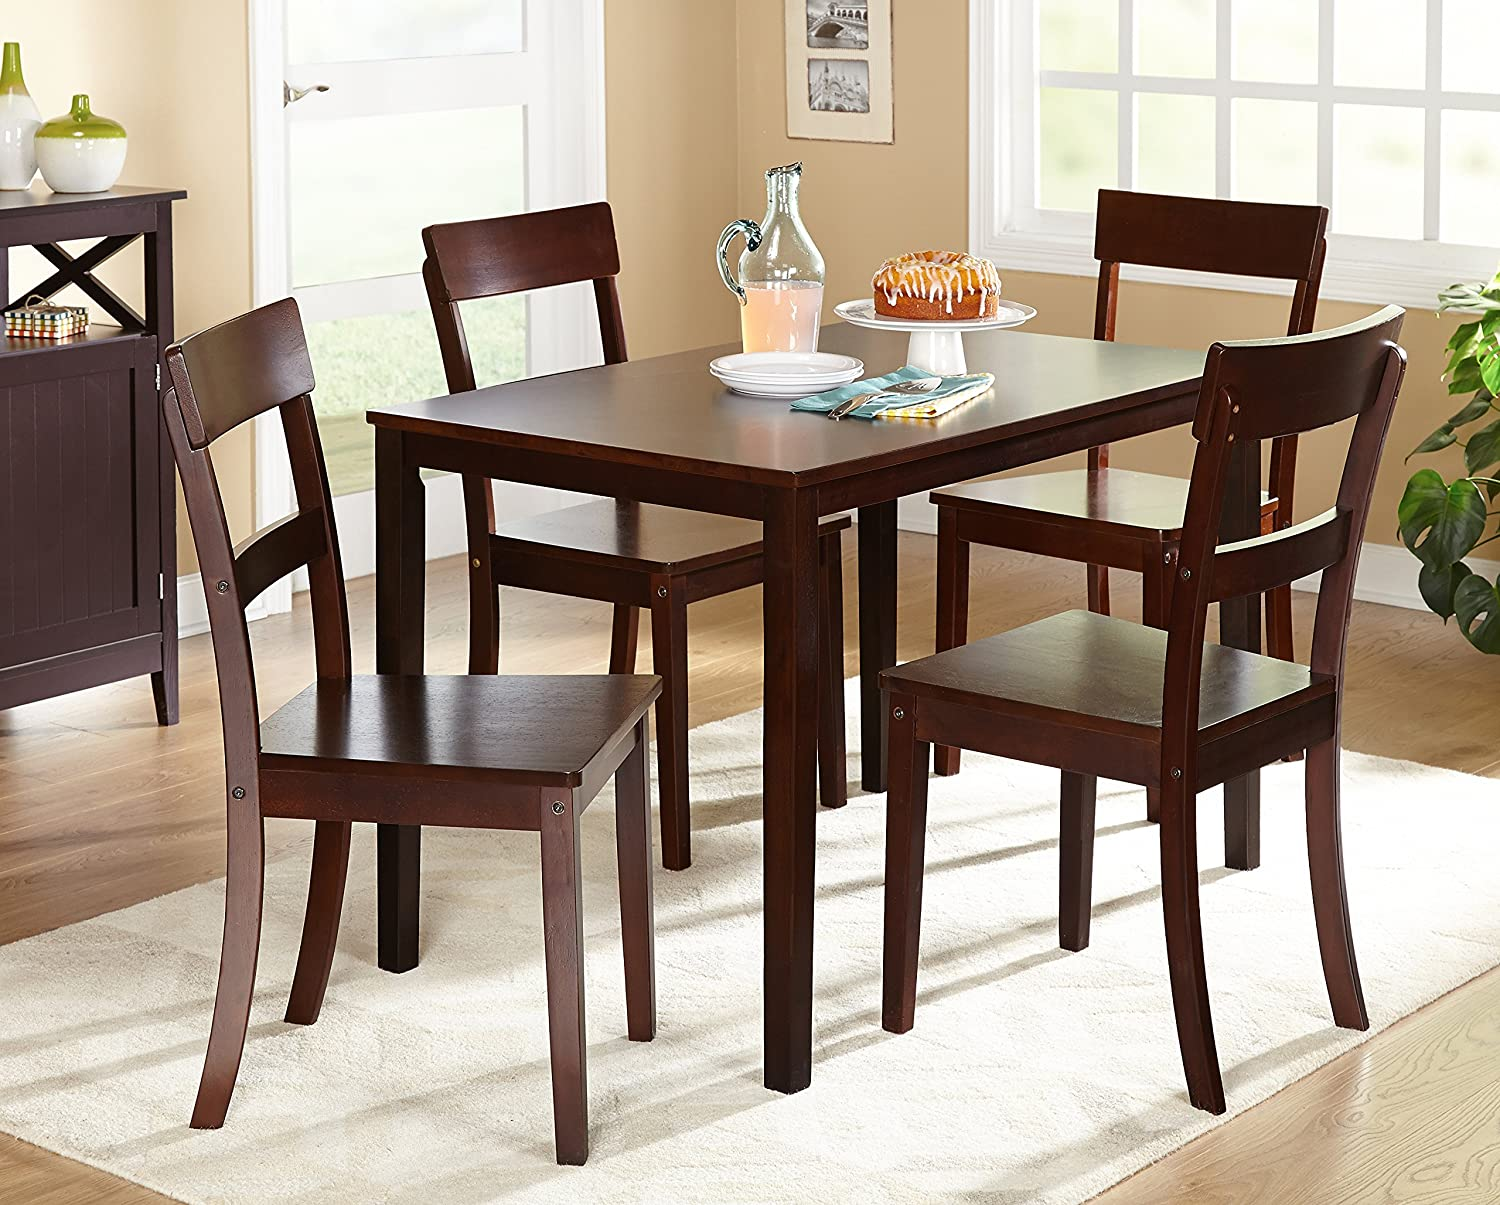 Amazon.com: Target Marketing Systems Ian Collection 5 Piece Indoor Kitchen Dining  Set With 1 Dining Table, 4 Chairs, Espresso: Kitchen U0026 Dining